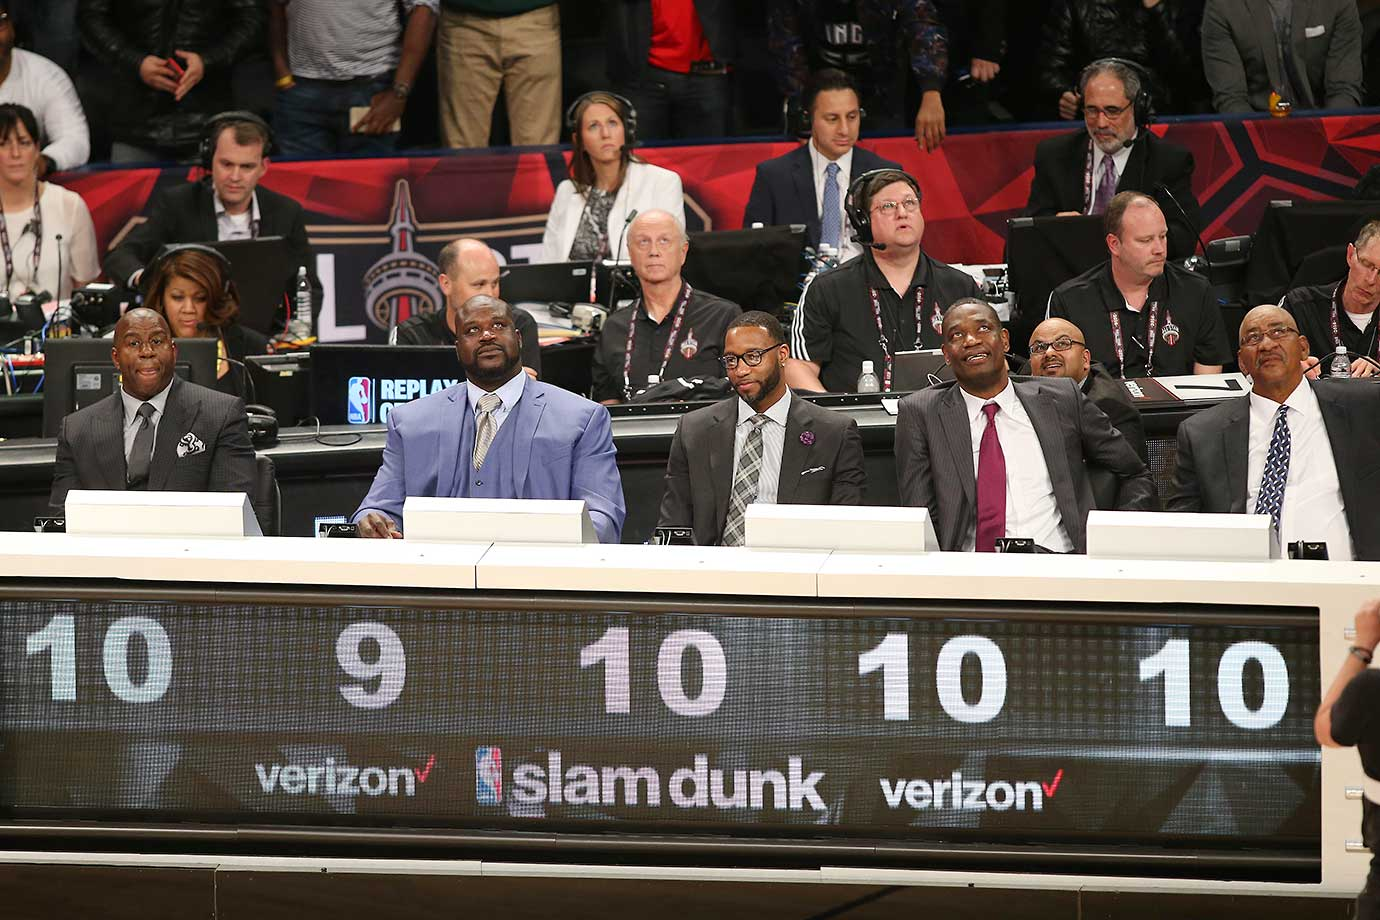 The judges reveal their score for Zach LaVine of the Minnesota Timberwolves during the slam dunk contest .